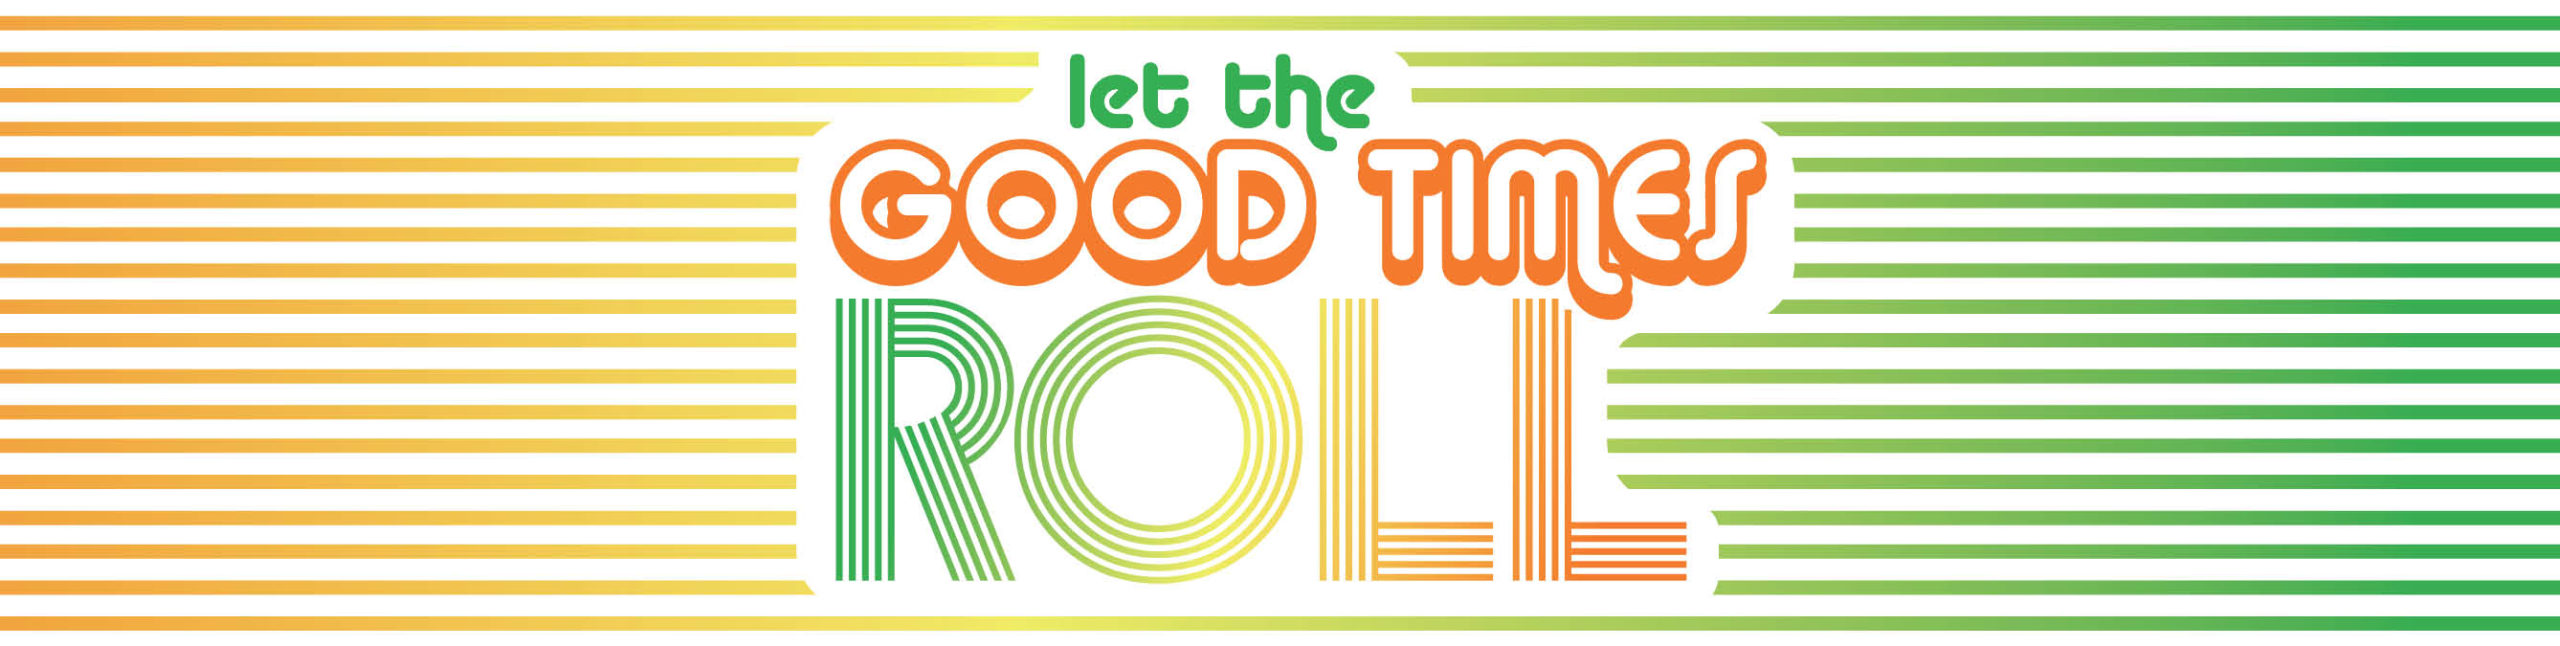 Let the Good Times Roll